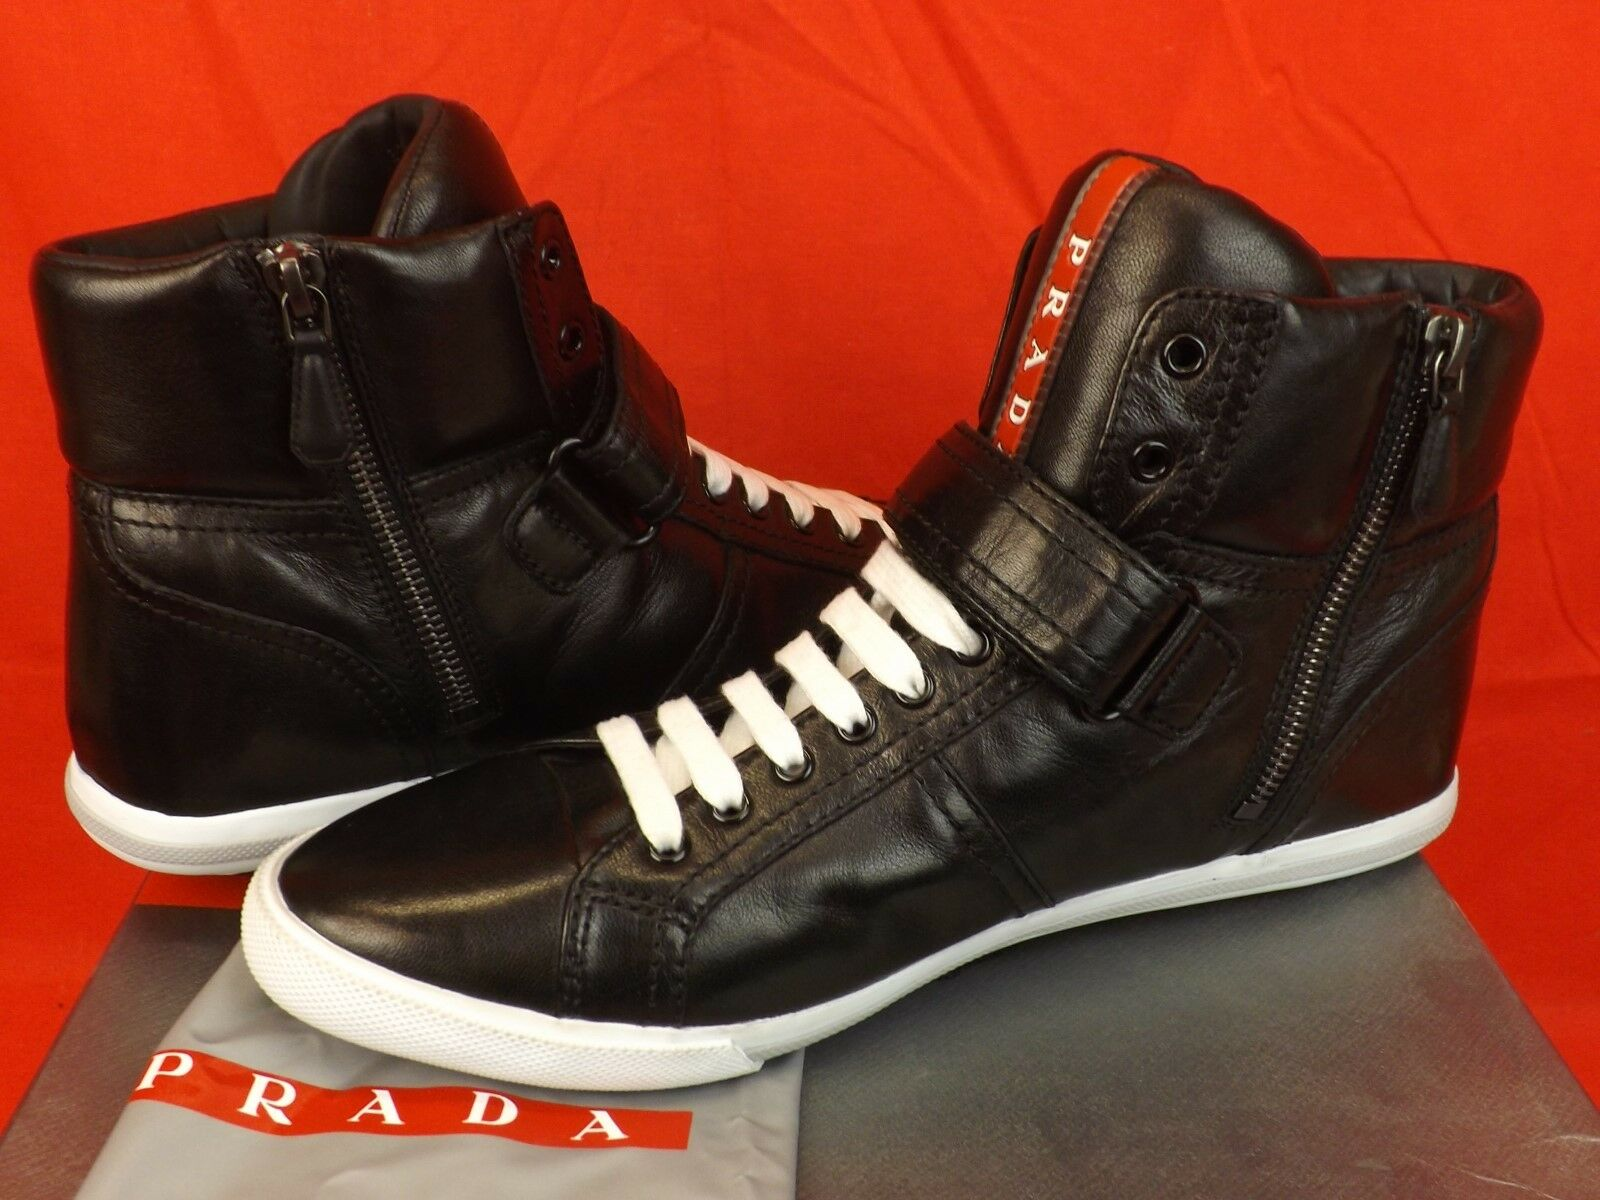 New in in in Box Prada en Cuir Noir Souple À Lacets Hi Top Logo Zip Strap Baskets 41 895   8afb64